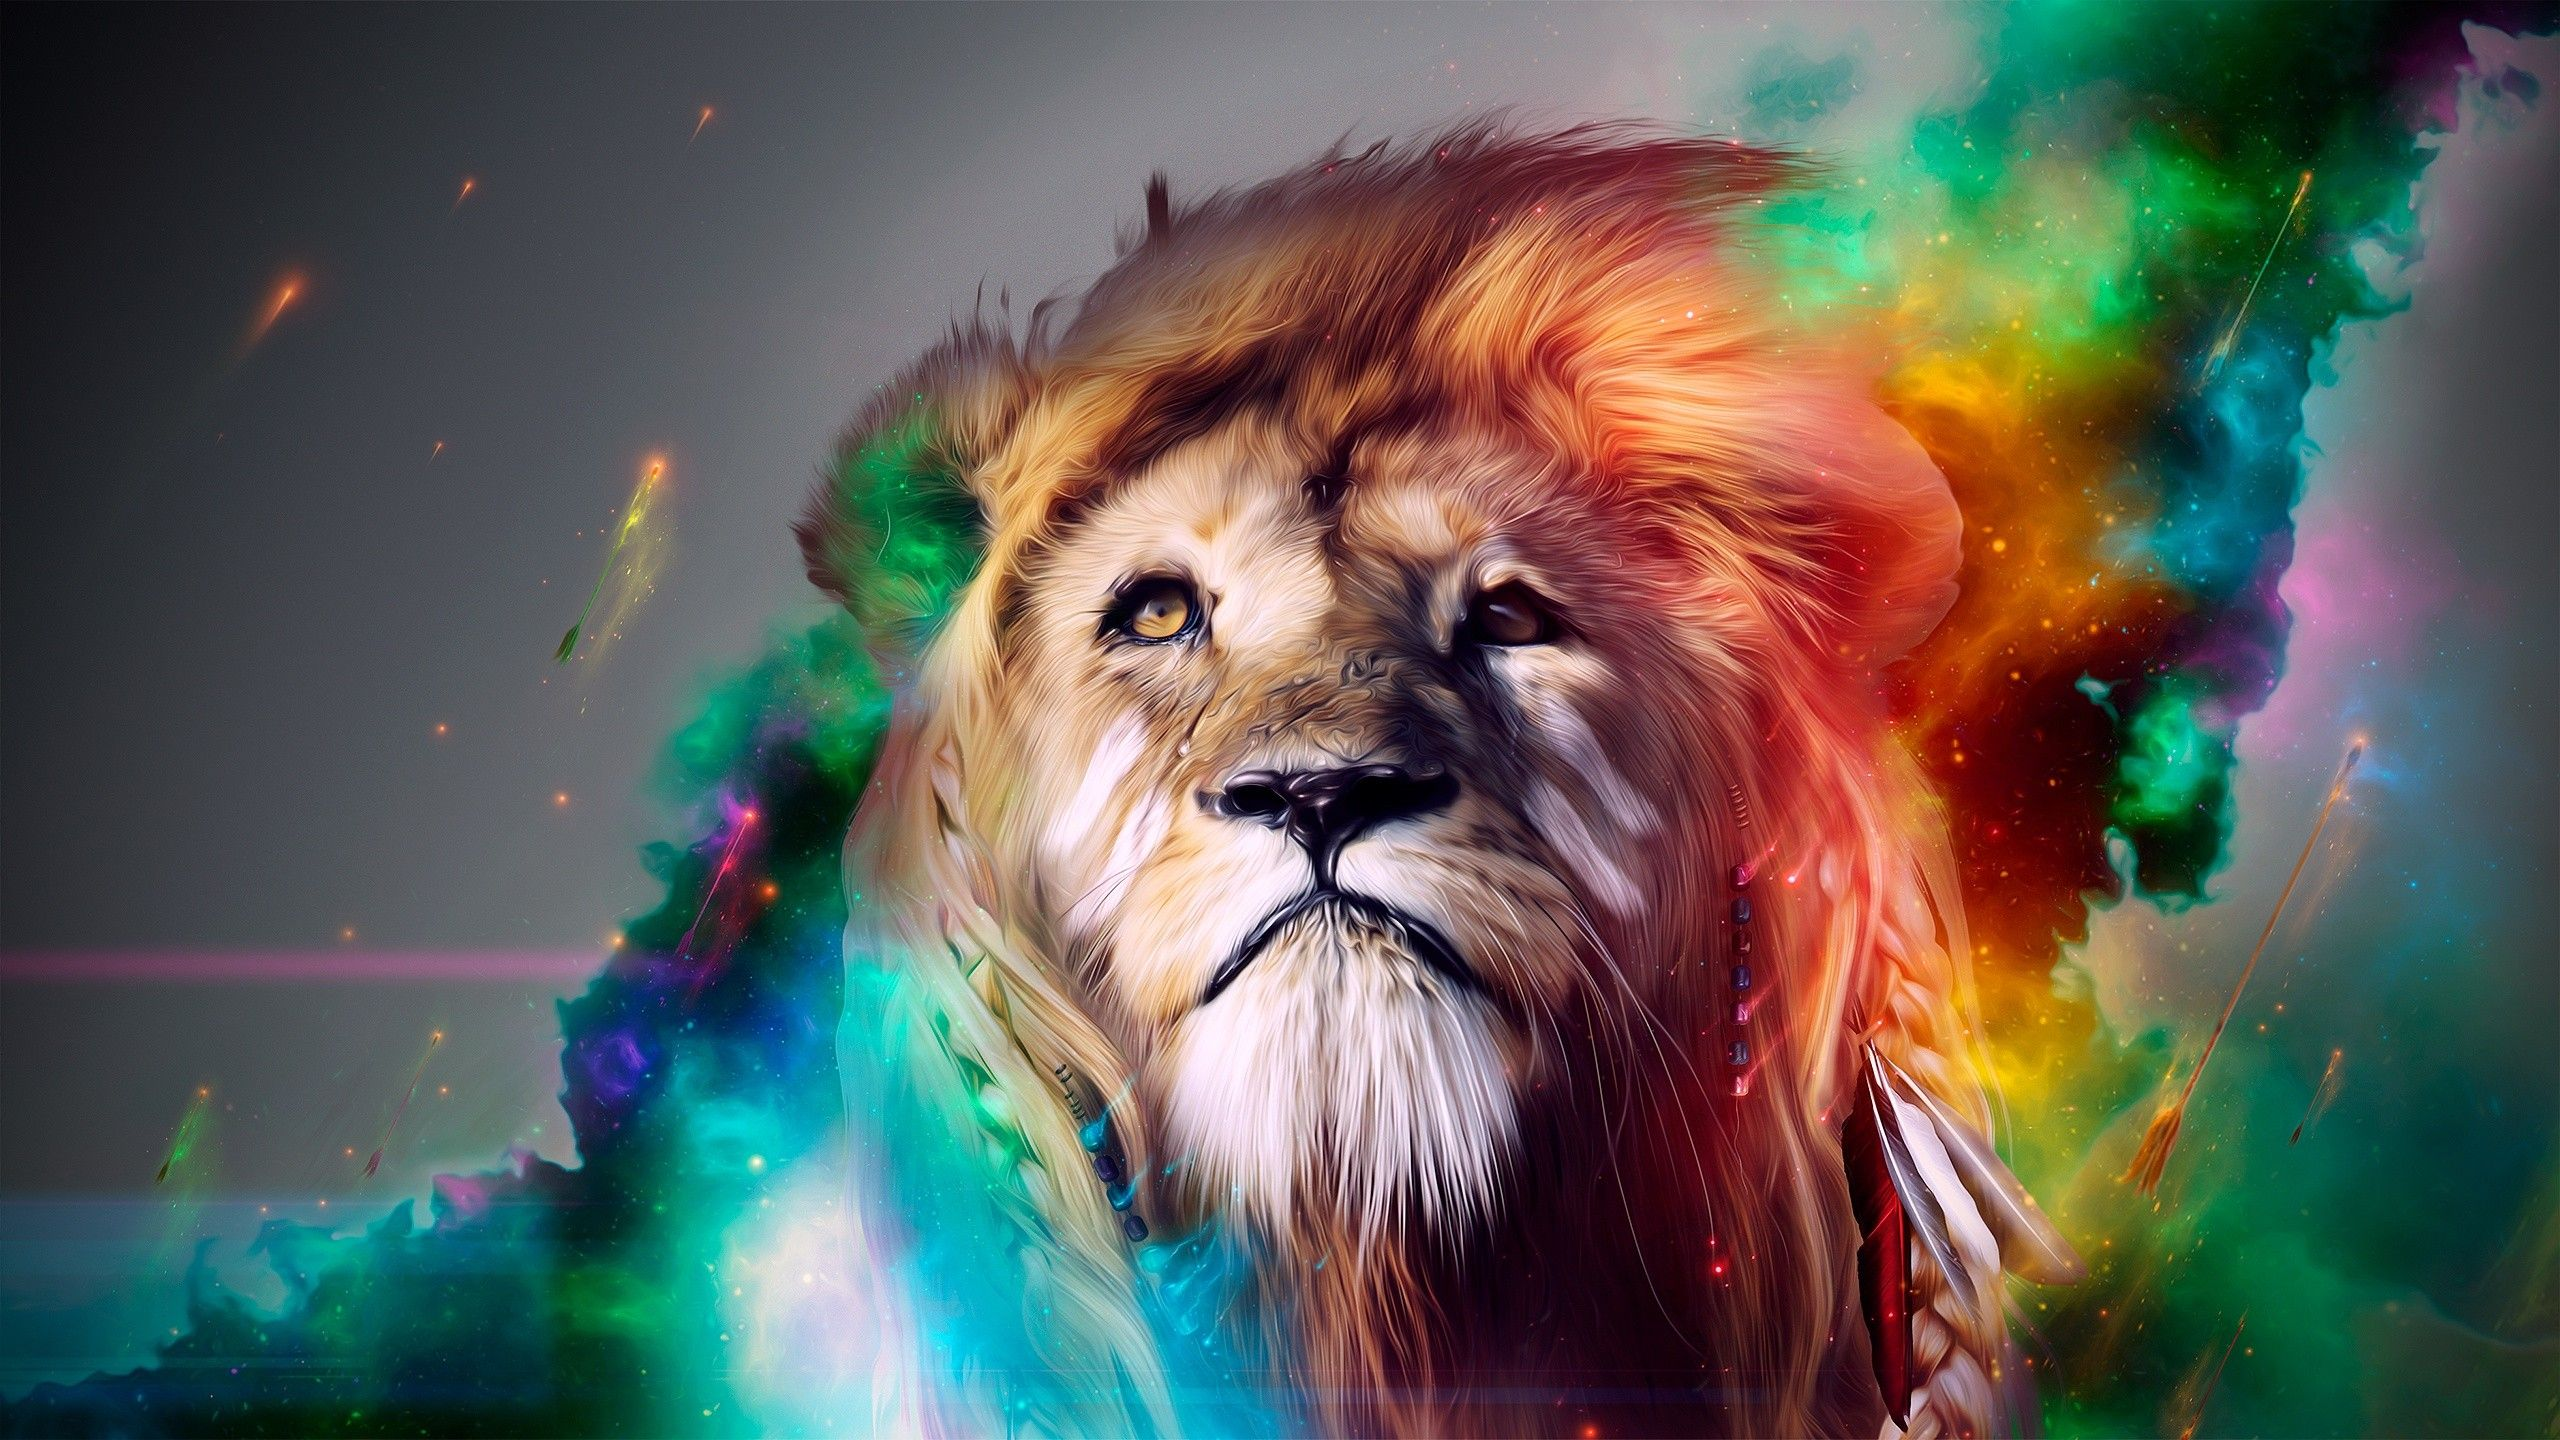 Lion Background For Desktop Wallpaper Abstract Lion Lion